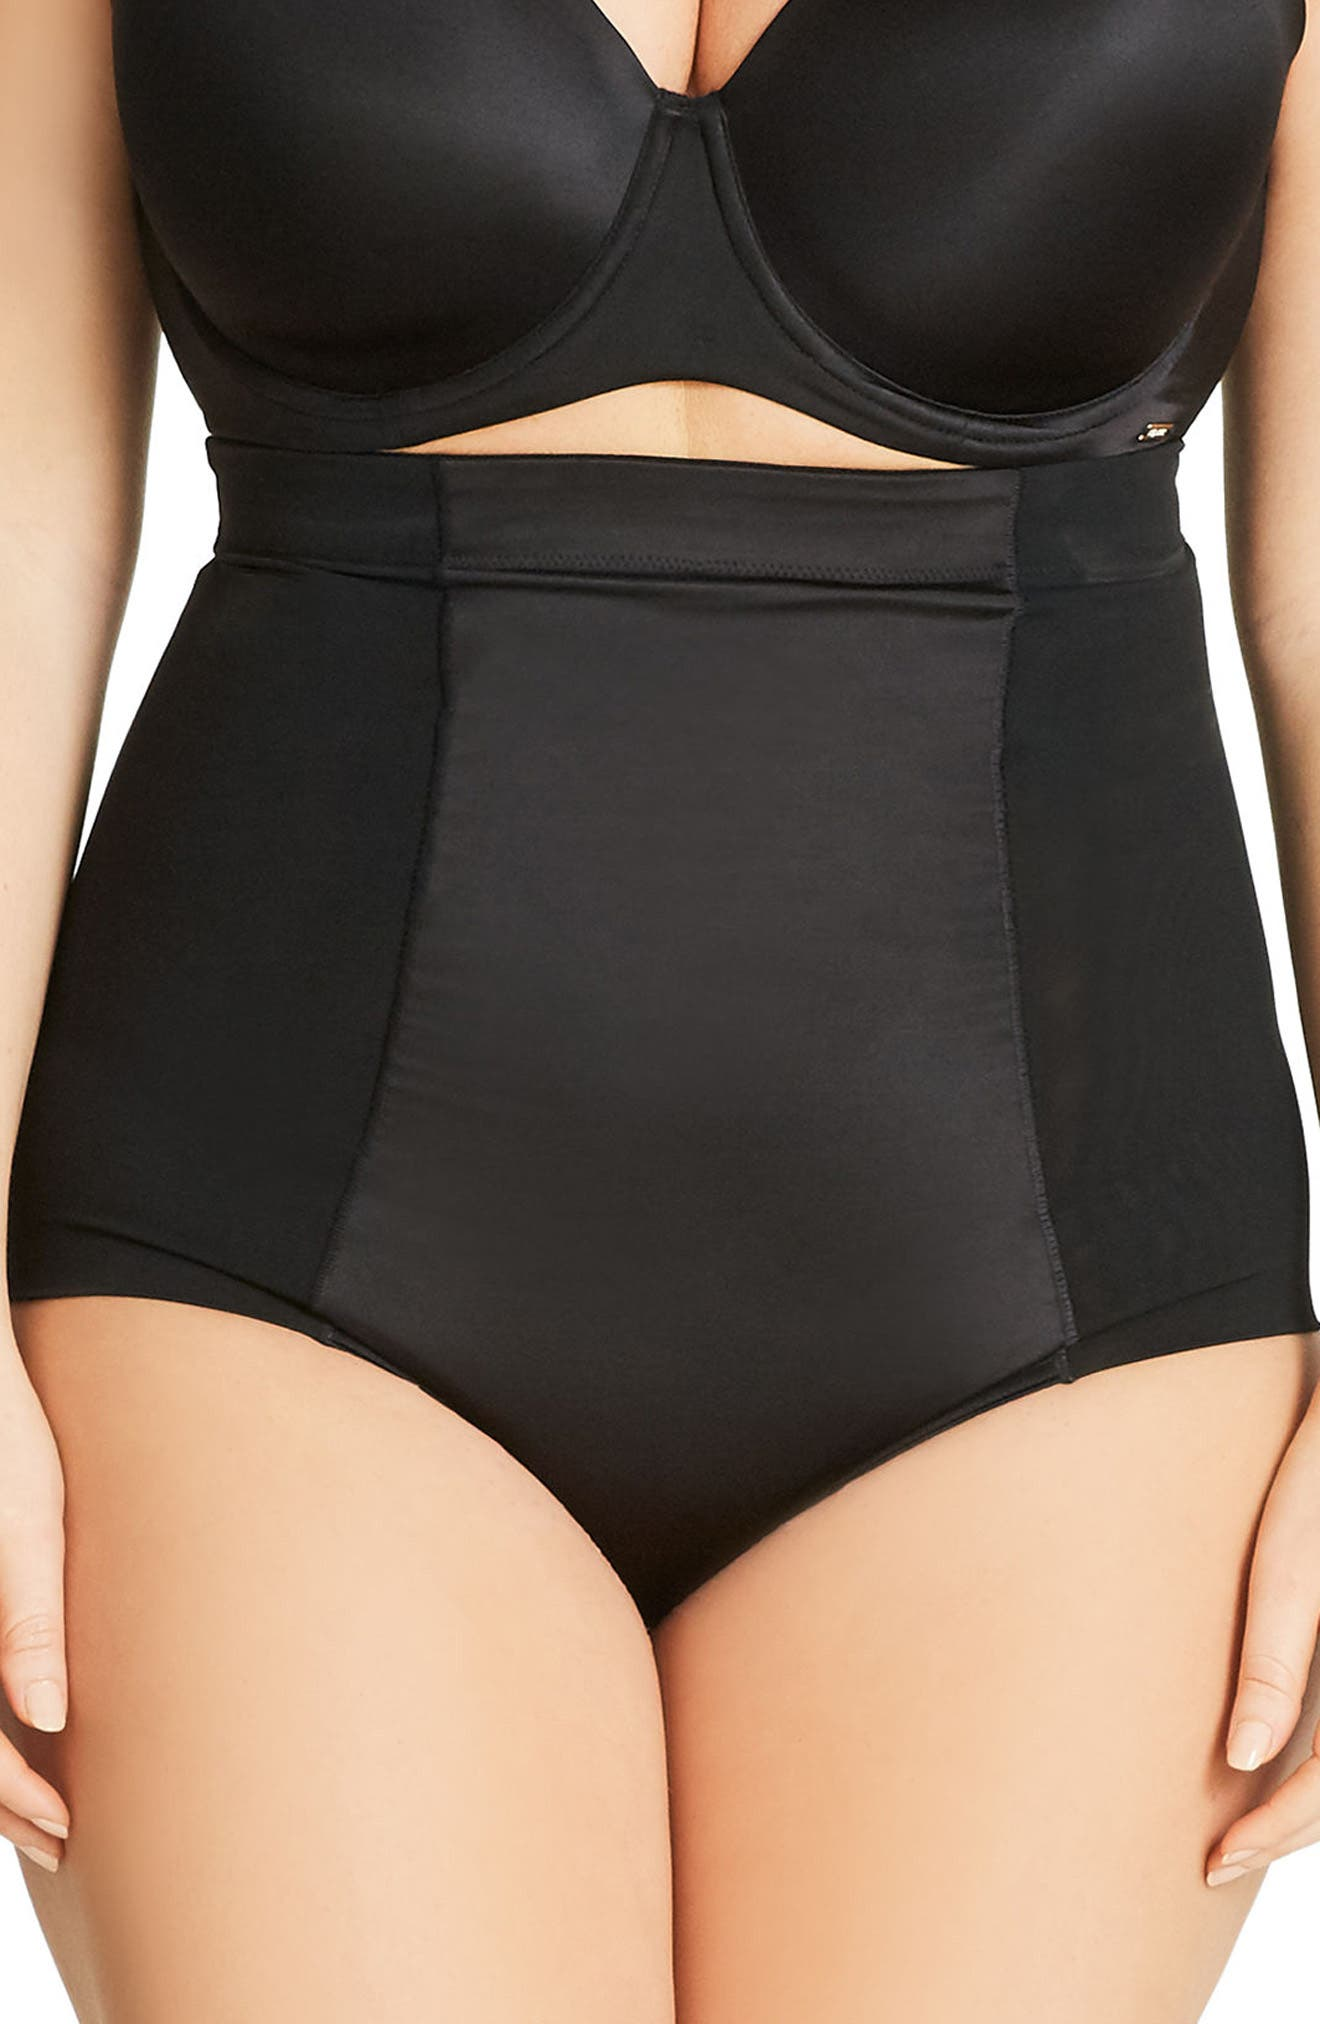 Alternate Image 1 Selected - City Chic Smooth & Chic Control Briefs (Plus Size)